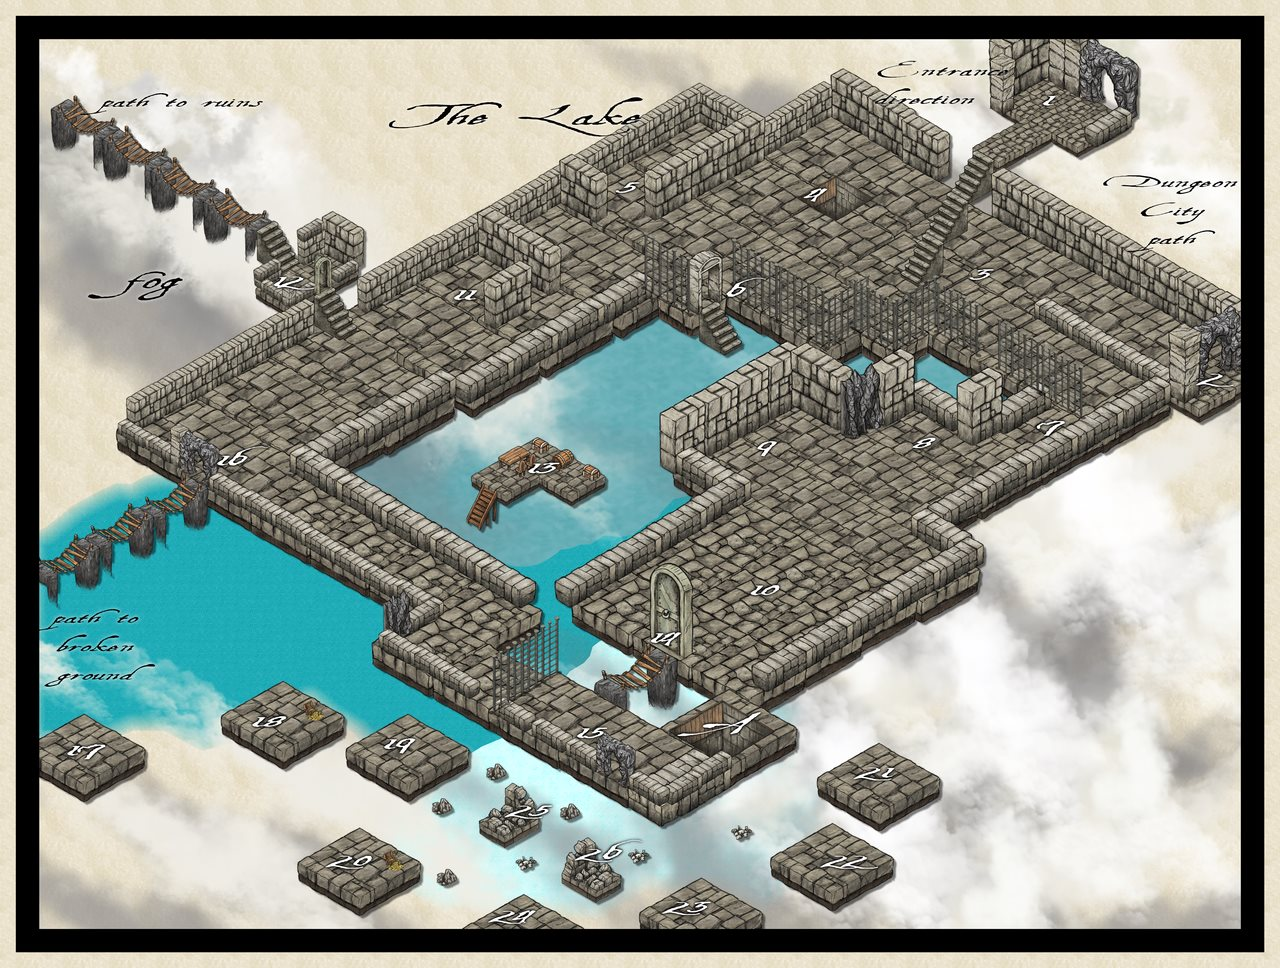 Nibirum Map: dungeon city small lake by JimP